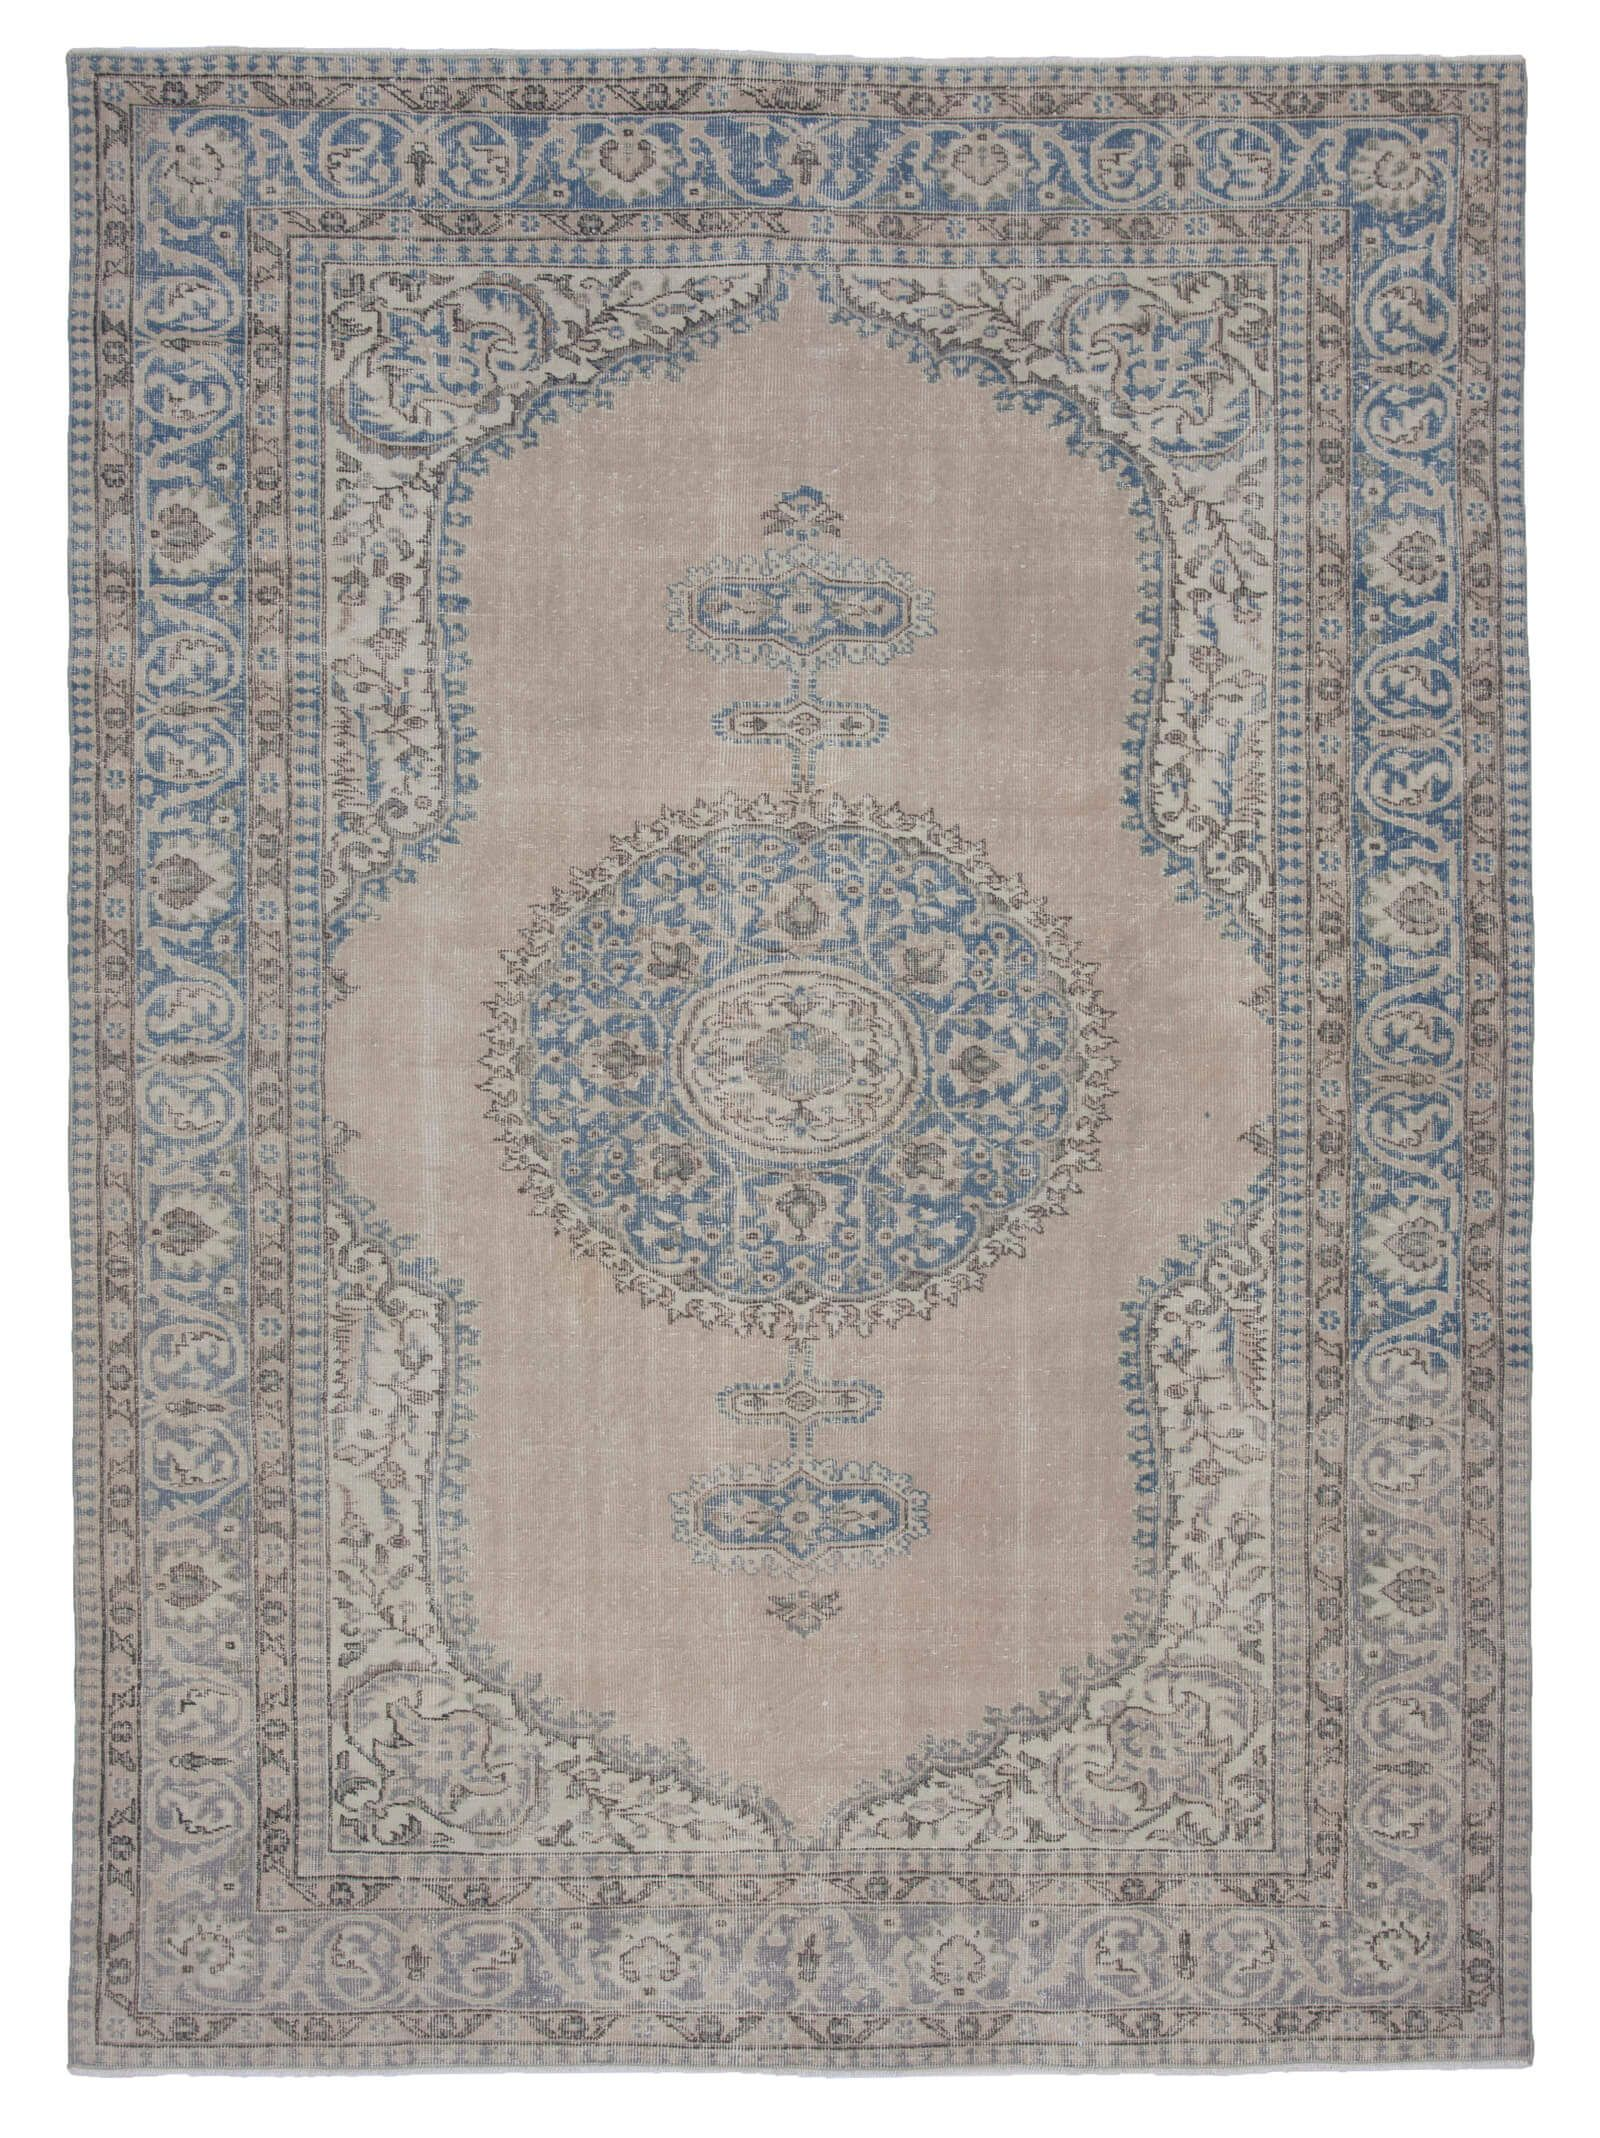 7x10 Beige Antique Anatolian Distressed Recycle Vintage Area Rug Rugs Carpet Vintagerug